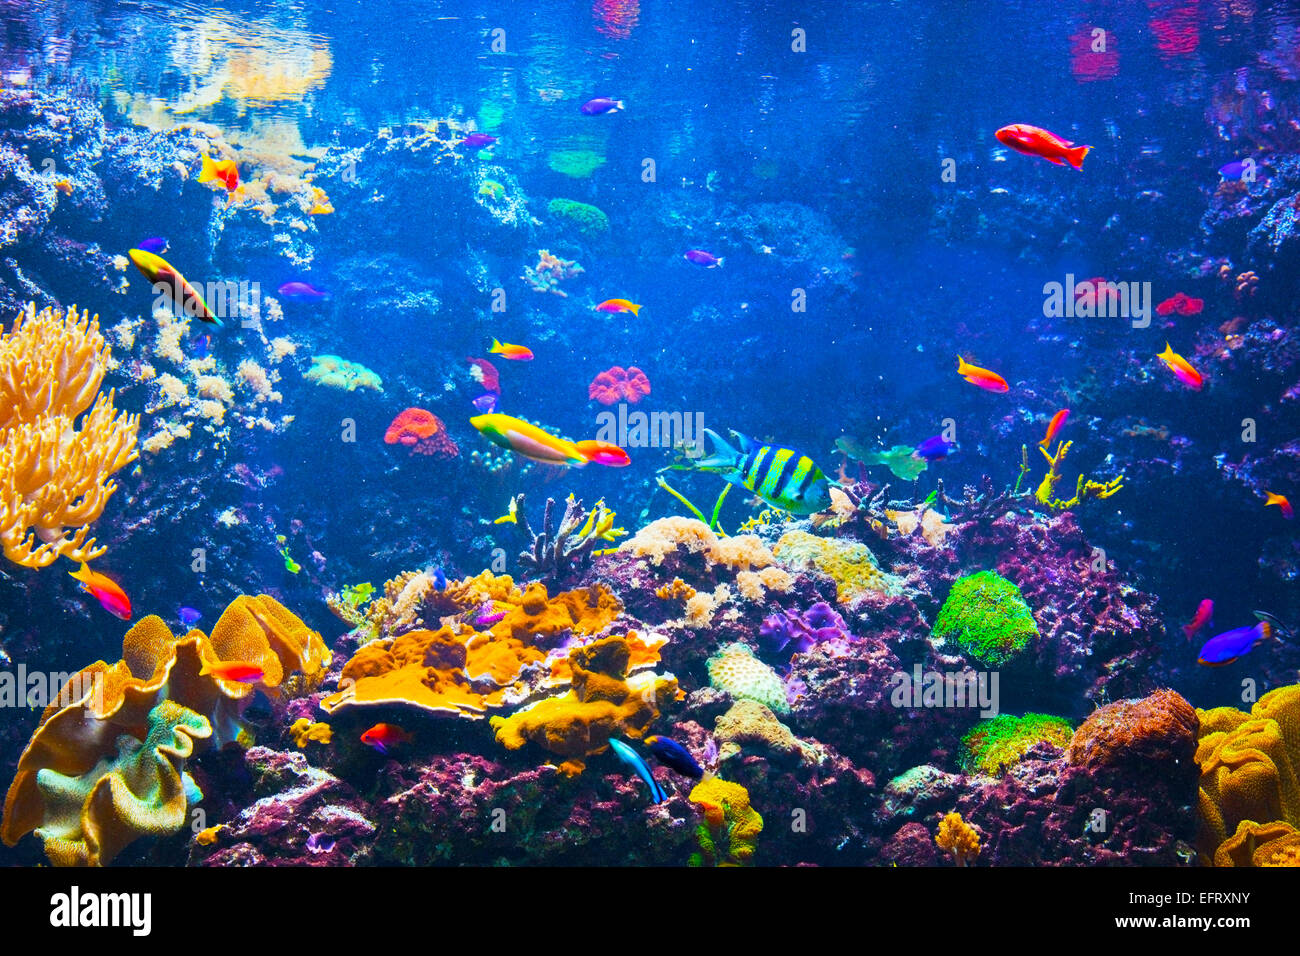 Underwater life. Coral reef, fish, colorful plants in ...